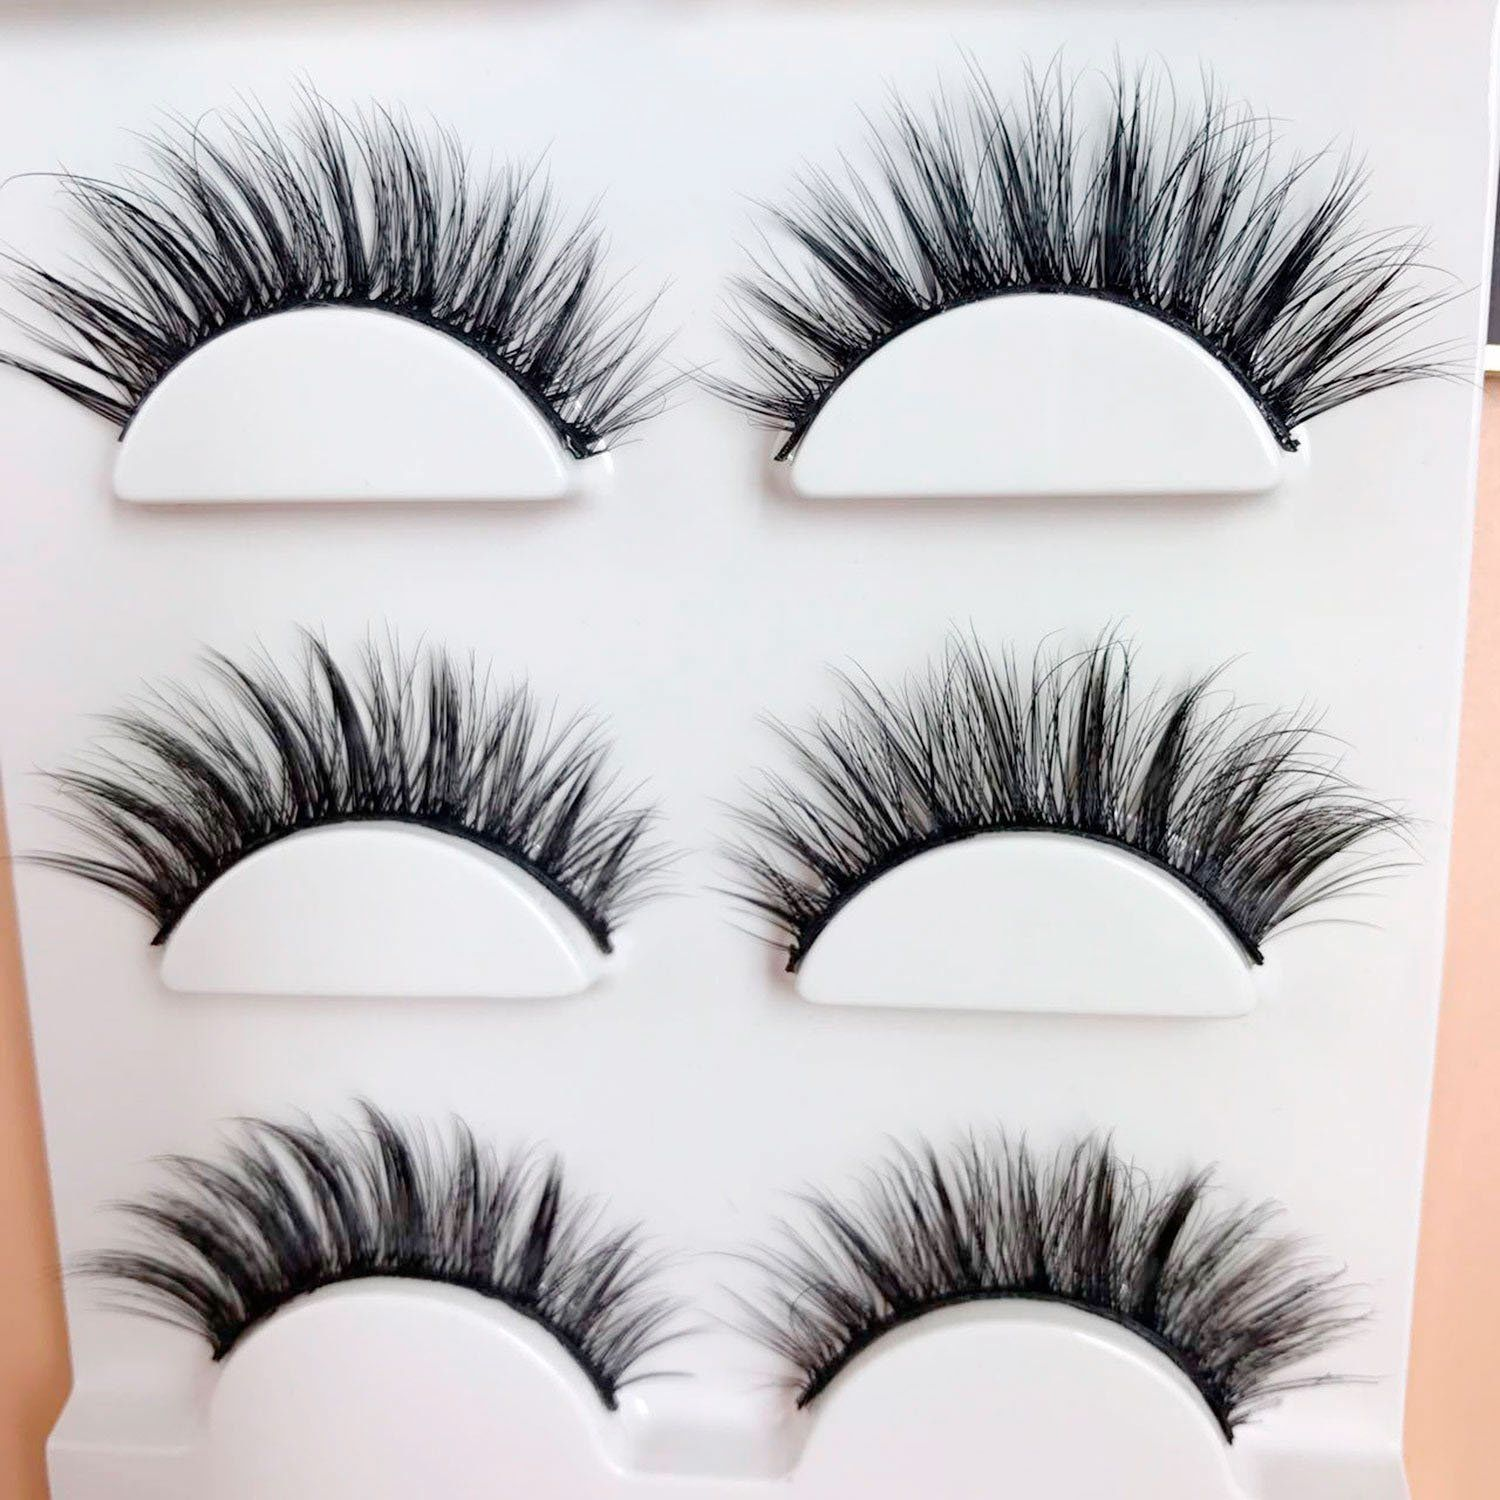 7d77a2ce364 Trcoveric 3D Fake Eyelashes Makeup Hand-made Dramatic Thick Crisscross  Deluxe False Lashes Black Nature